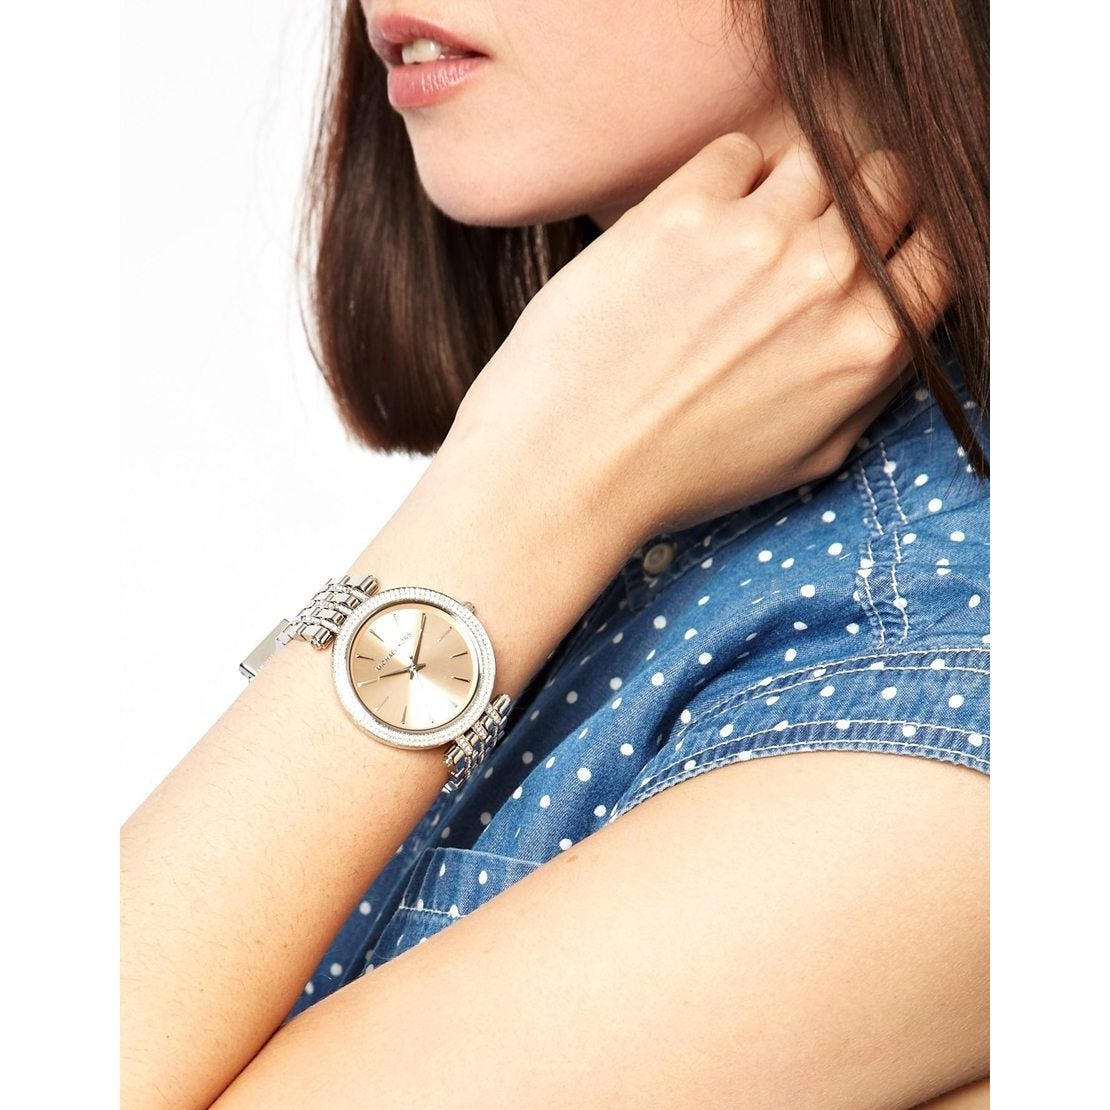 31b5ae0bd886 Shop Michael Kors Women s Darci MK3218 Silvertone Stainless Steel Quartz  Watch with Brown Dial - Free Shipping Today - Overstock - 9183458